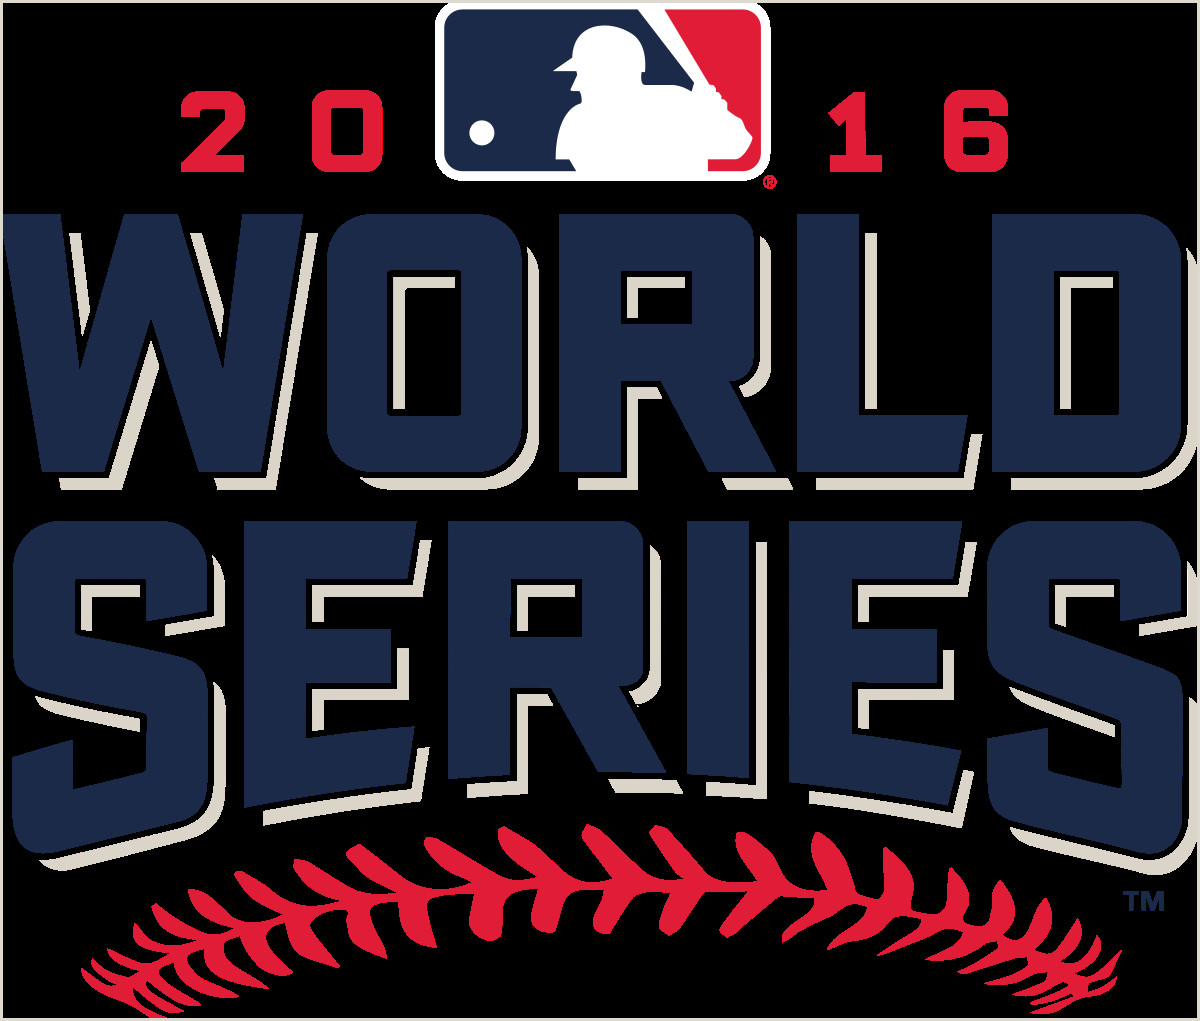 Best Business Cards Chicago 2016 World Series